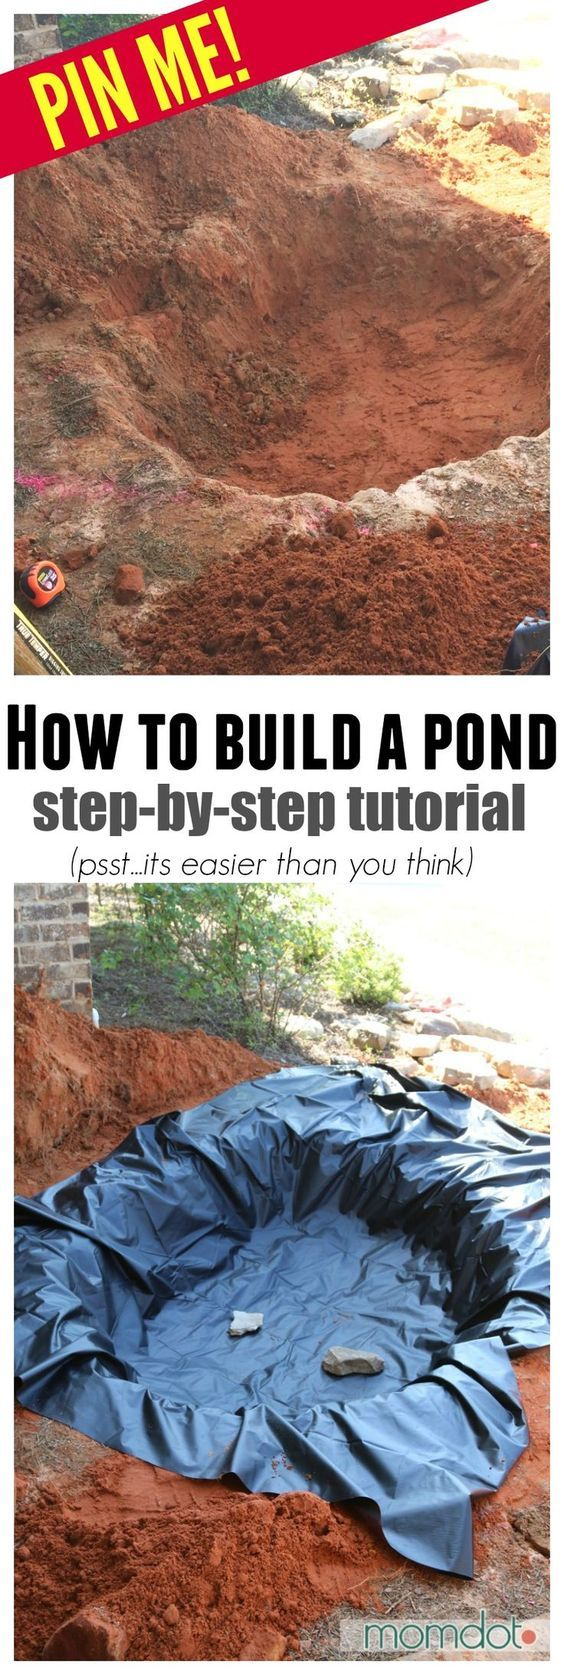 25 Best Ideas About Coy Pond On Pinterest Outdoor Fish Ponds Koi Pond Supplies And Container